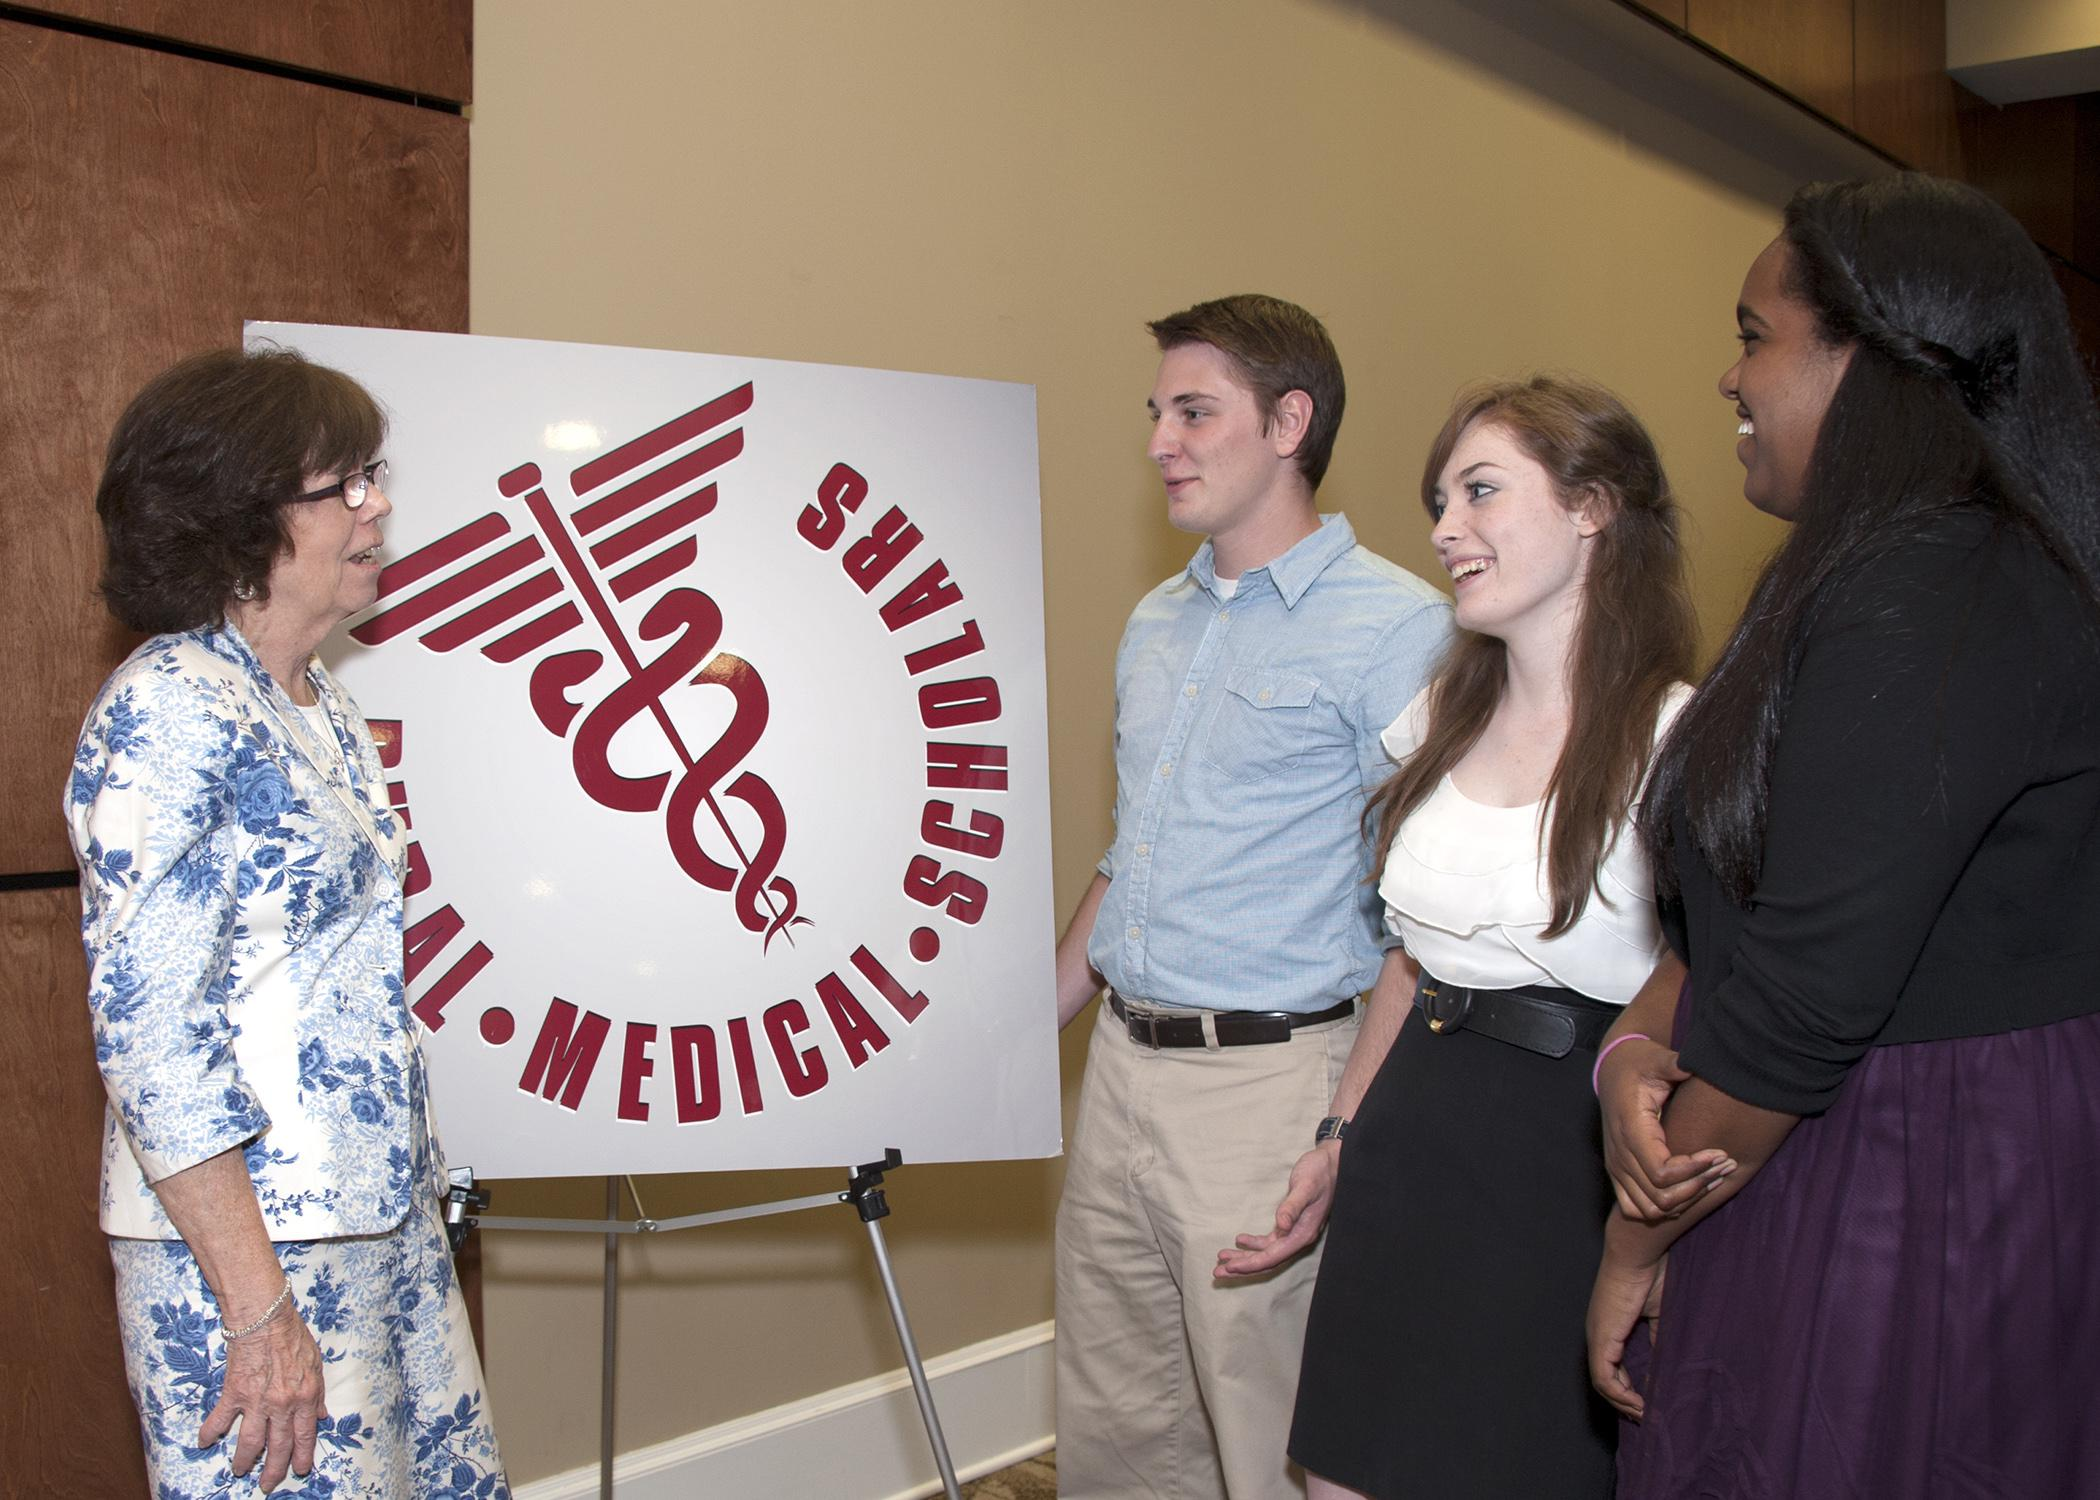 An instructor and three students have a discussion in front of a Rural Medical Scholars sign.